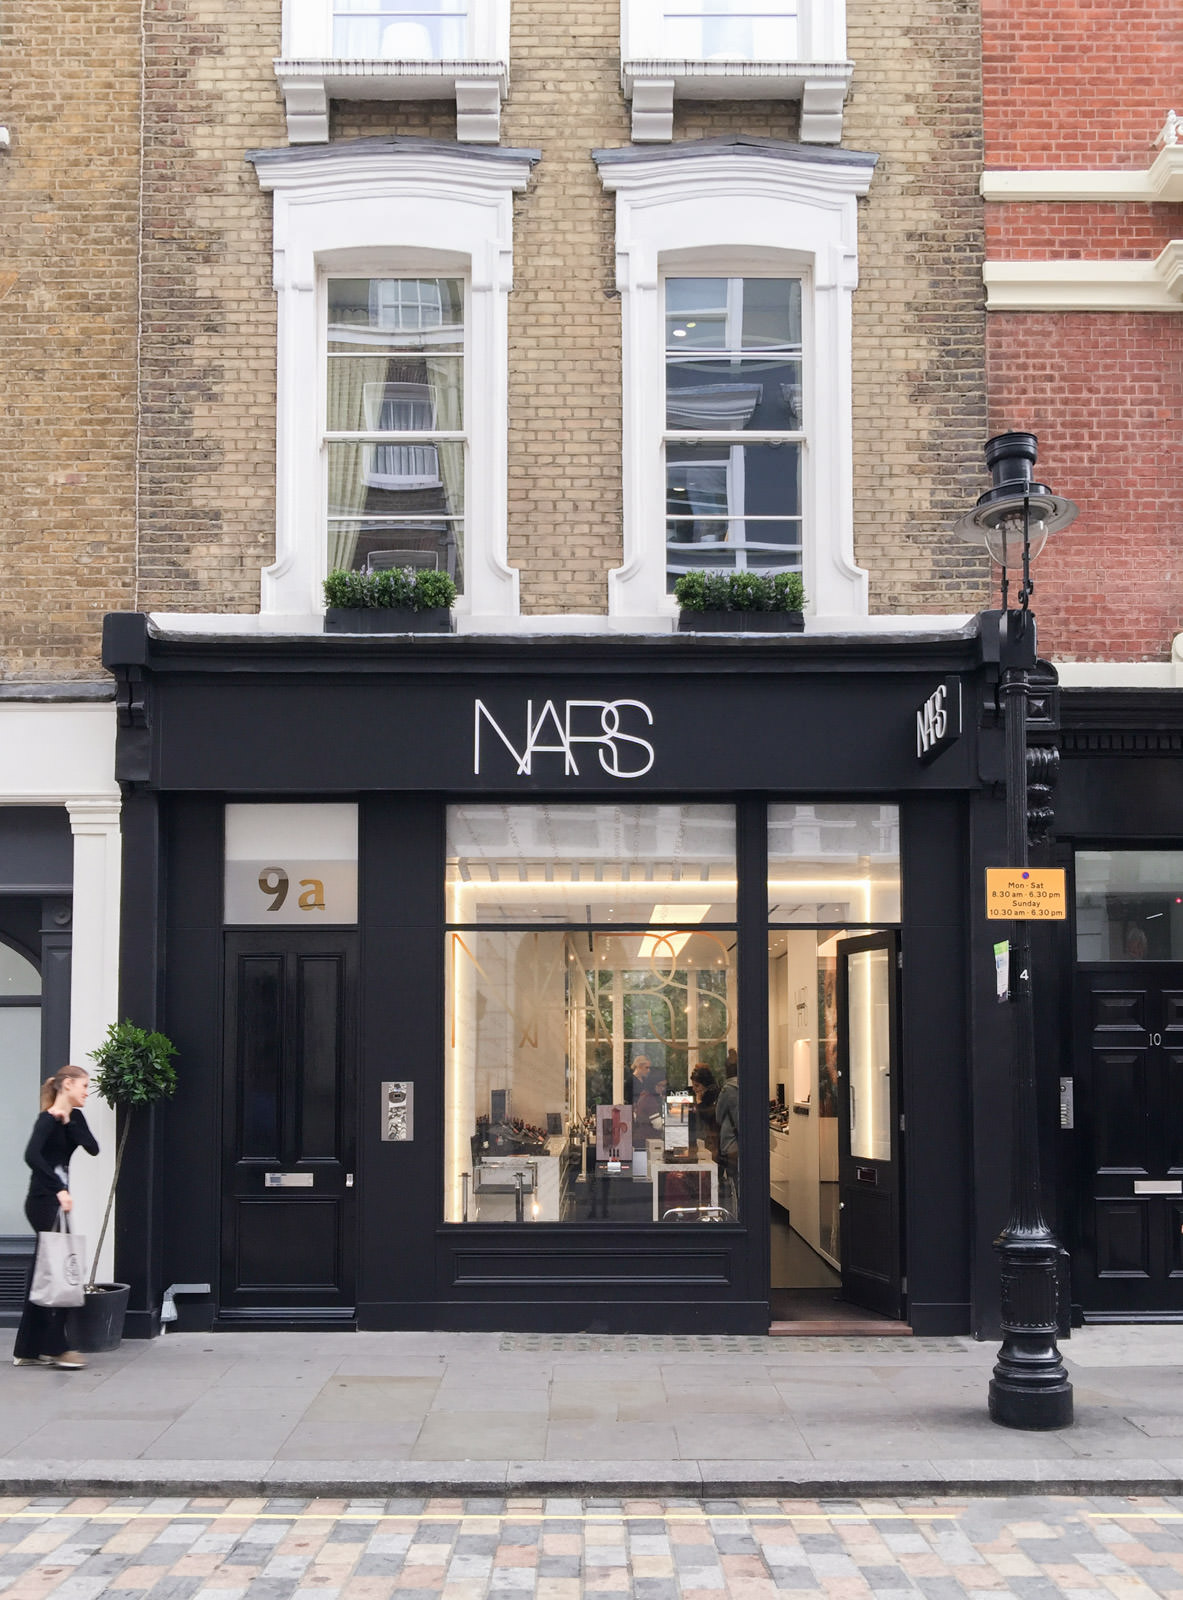 Blog-Mode-And-The-City-Lifestyle-Cinq-Petites-Choses-189-NARS-Londres-Fashion-Week